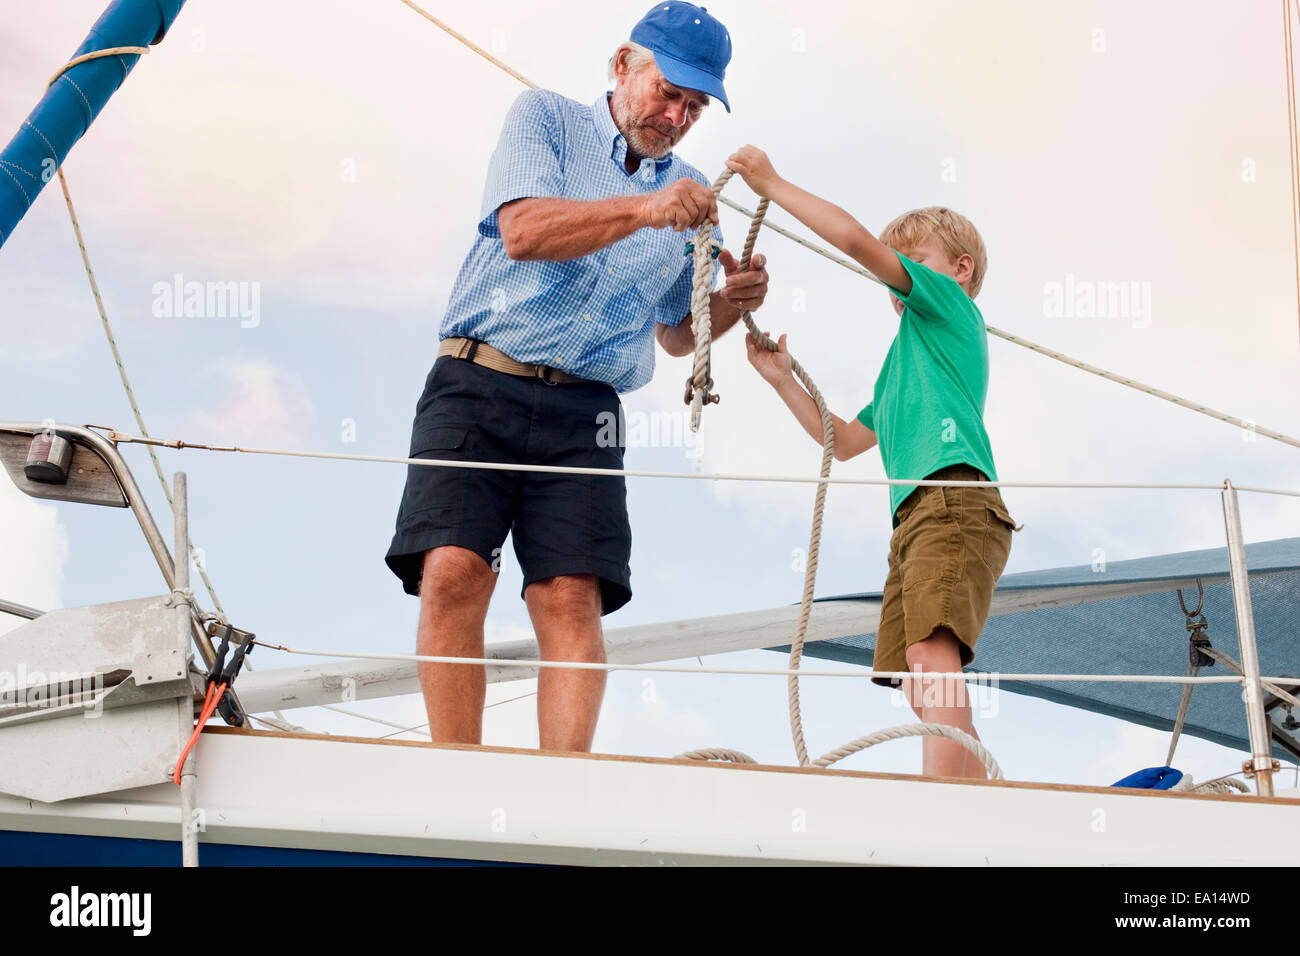 Boy and grandfather knotting rope on sailboat - Stock Image